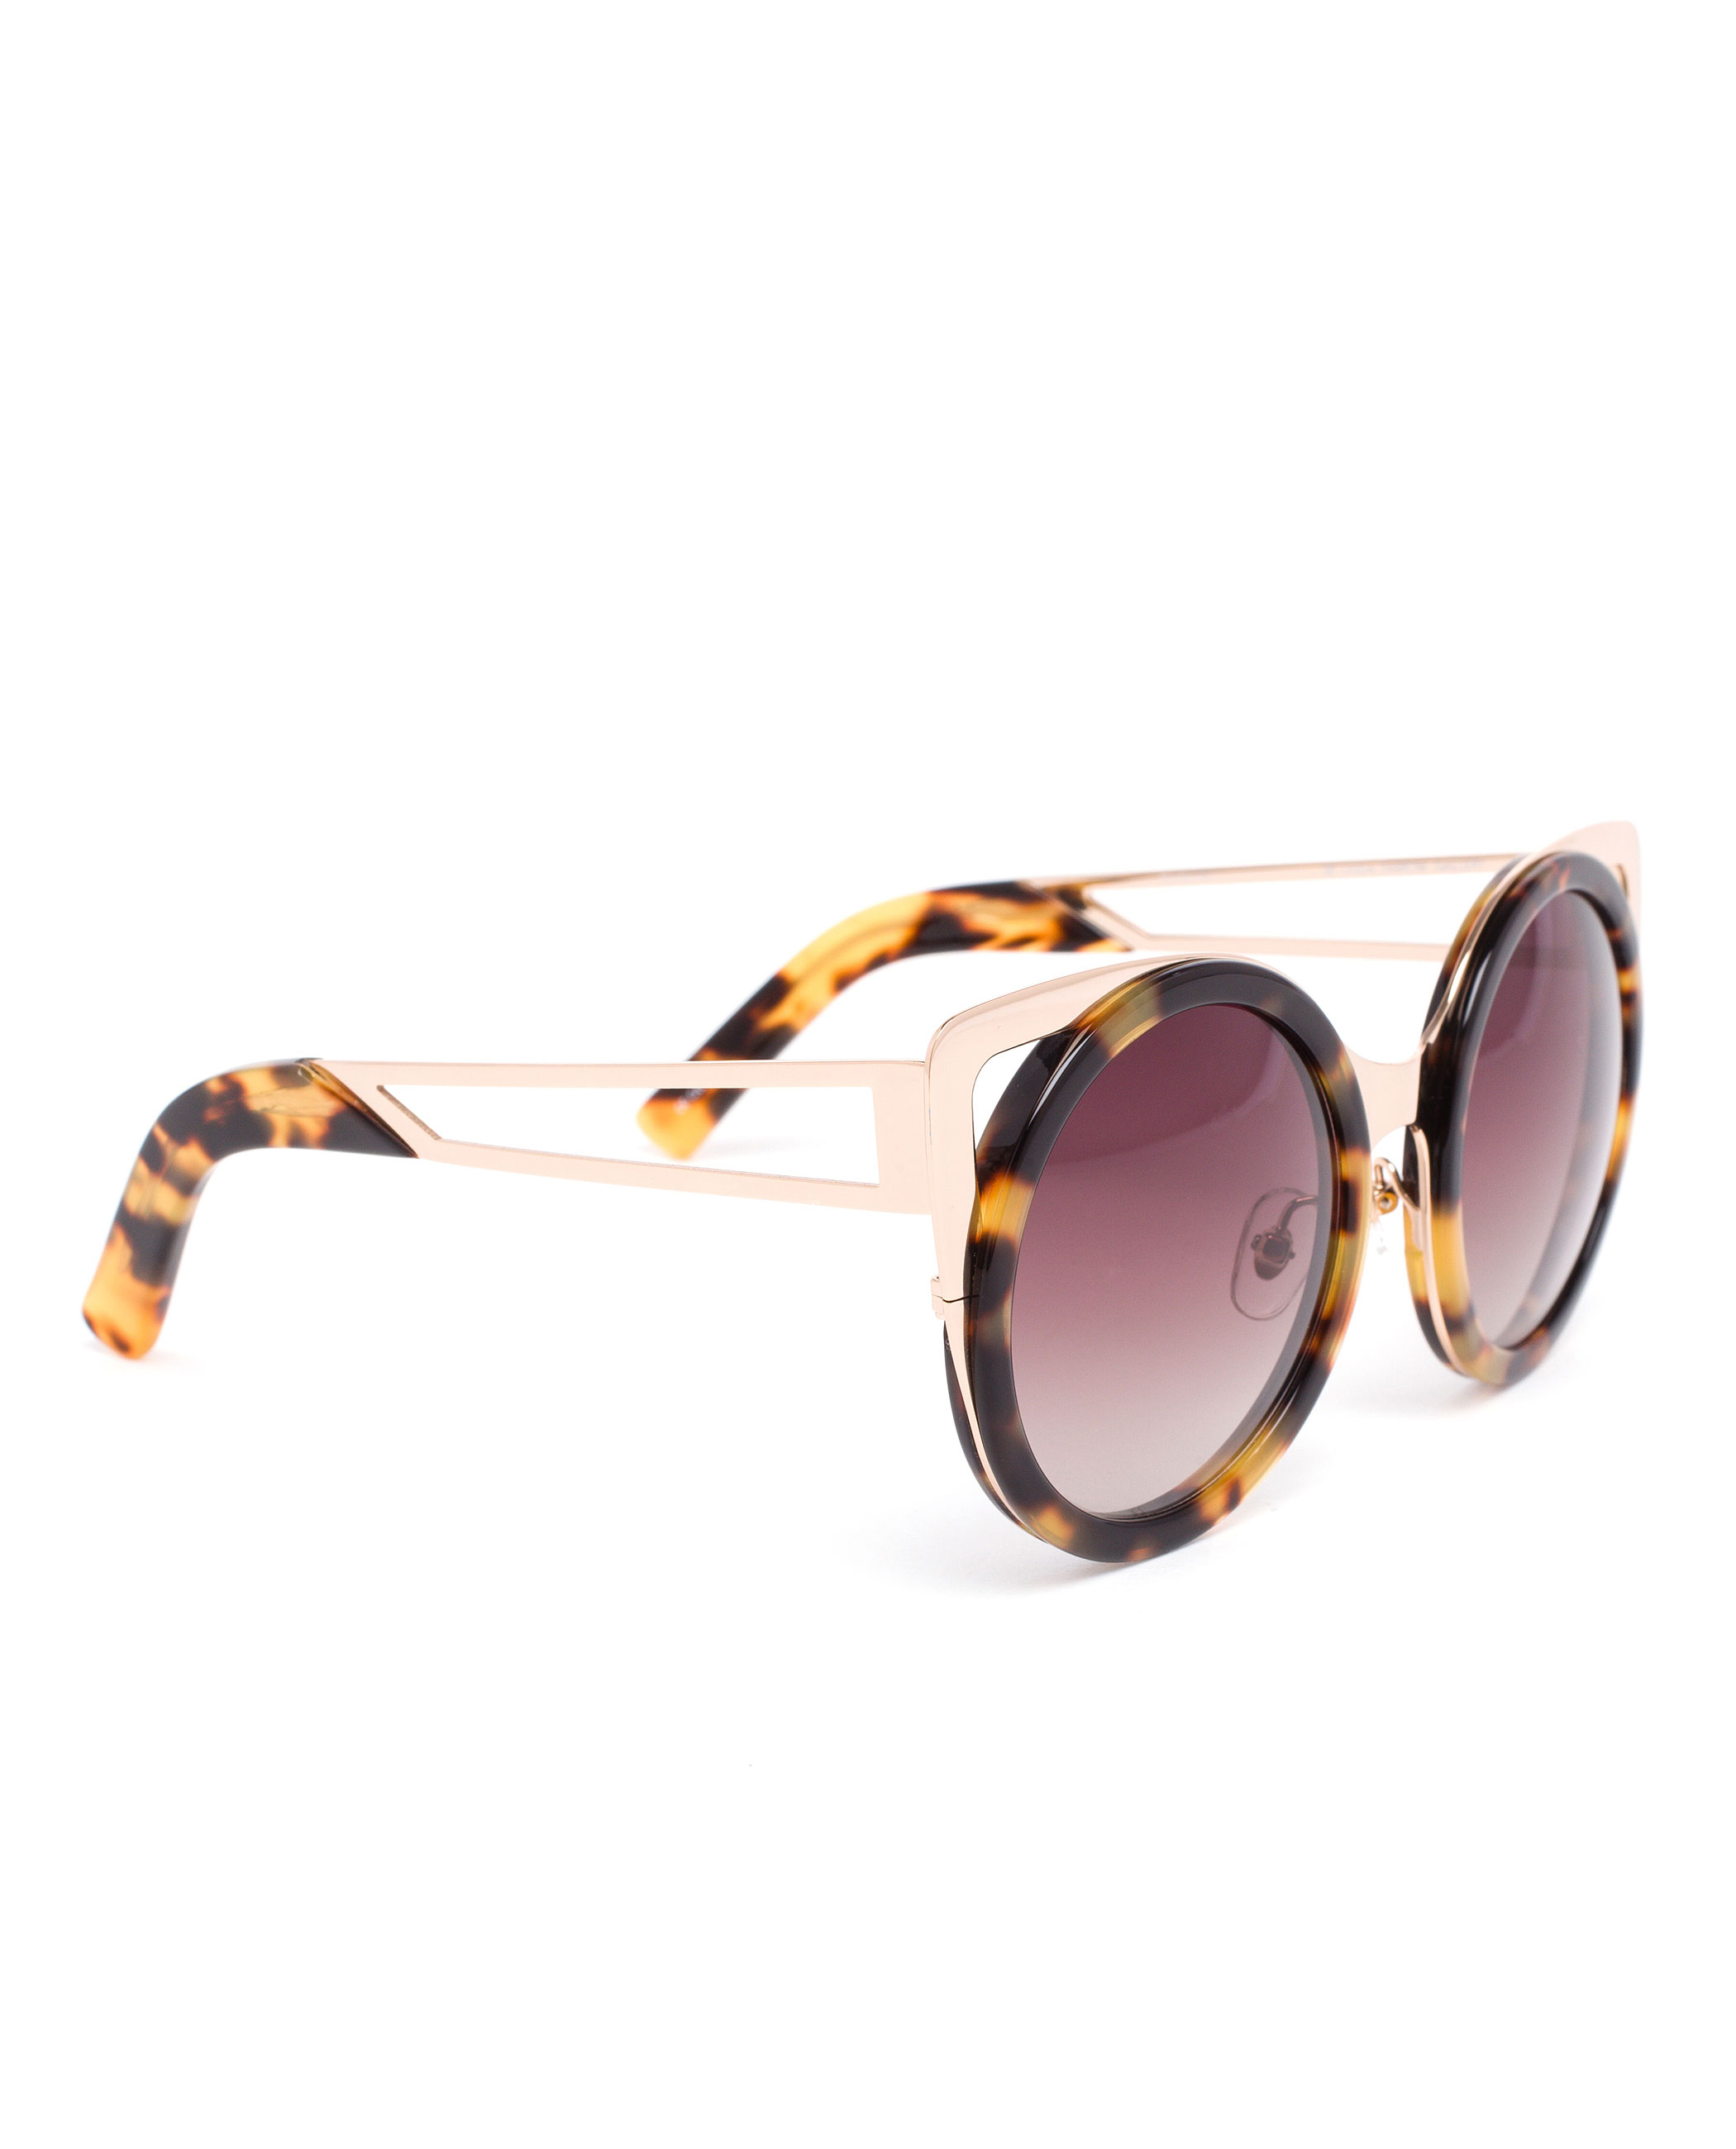 Linda Farrow Sunglasses | Linda Farrow The Row | Linda Farrow Gilt